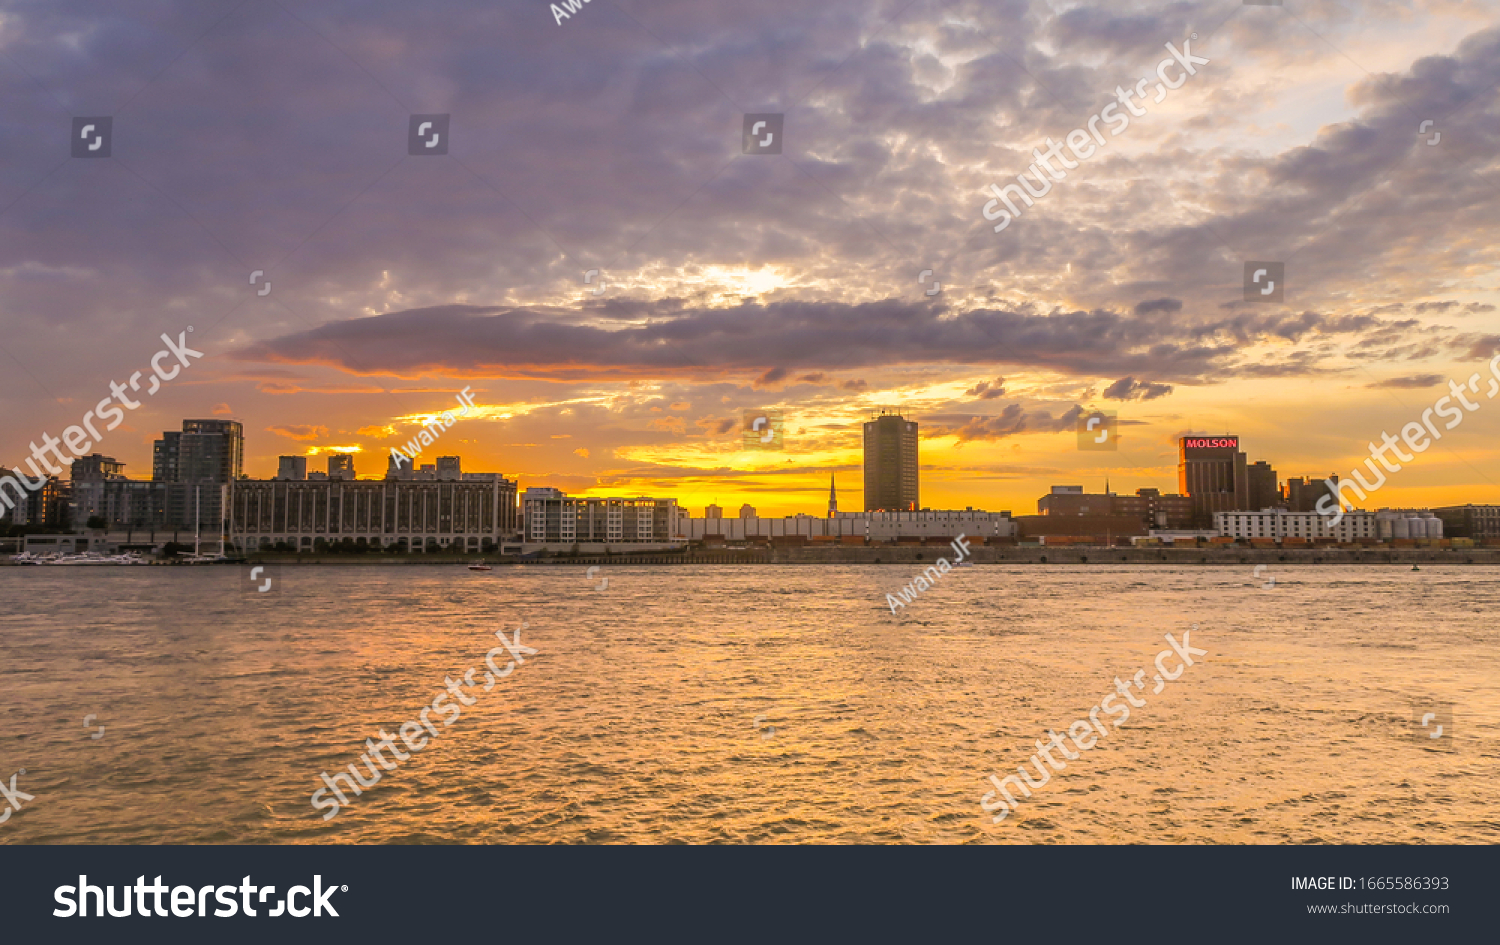 Montreal, Canada - july 2019: Sunset over the skyline of Montreal and the saint-laurent river from Jean Drapeau park